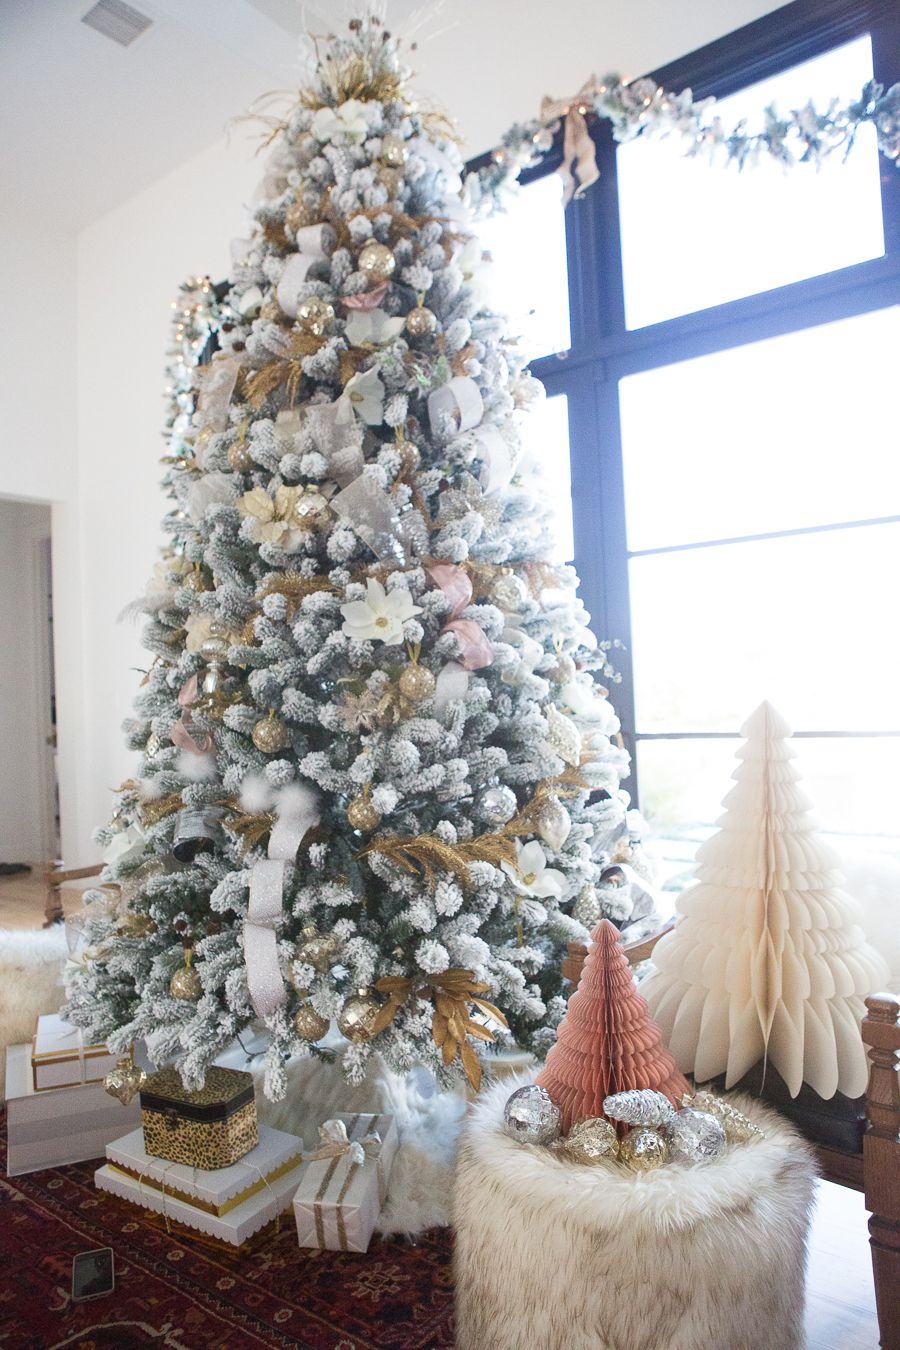 West Elm Christmas Ornaments.21 Easy Christmas Decor And Gift Ideas From West Elm Cc